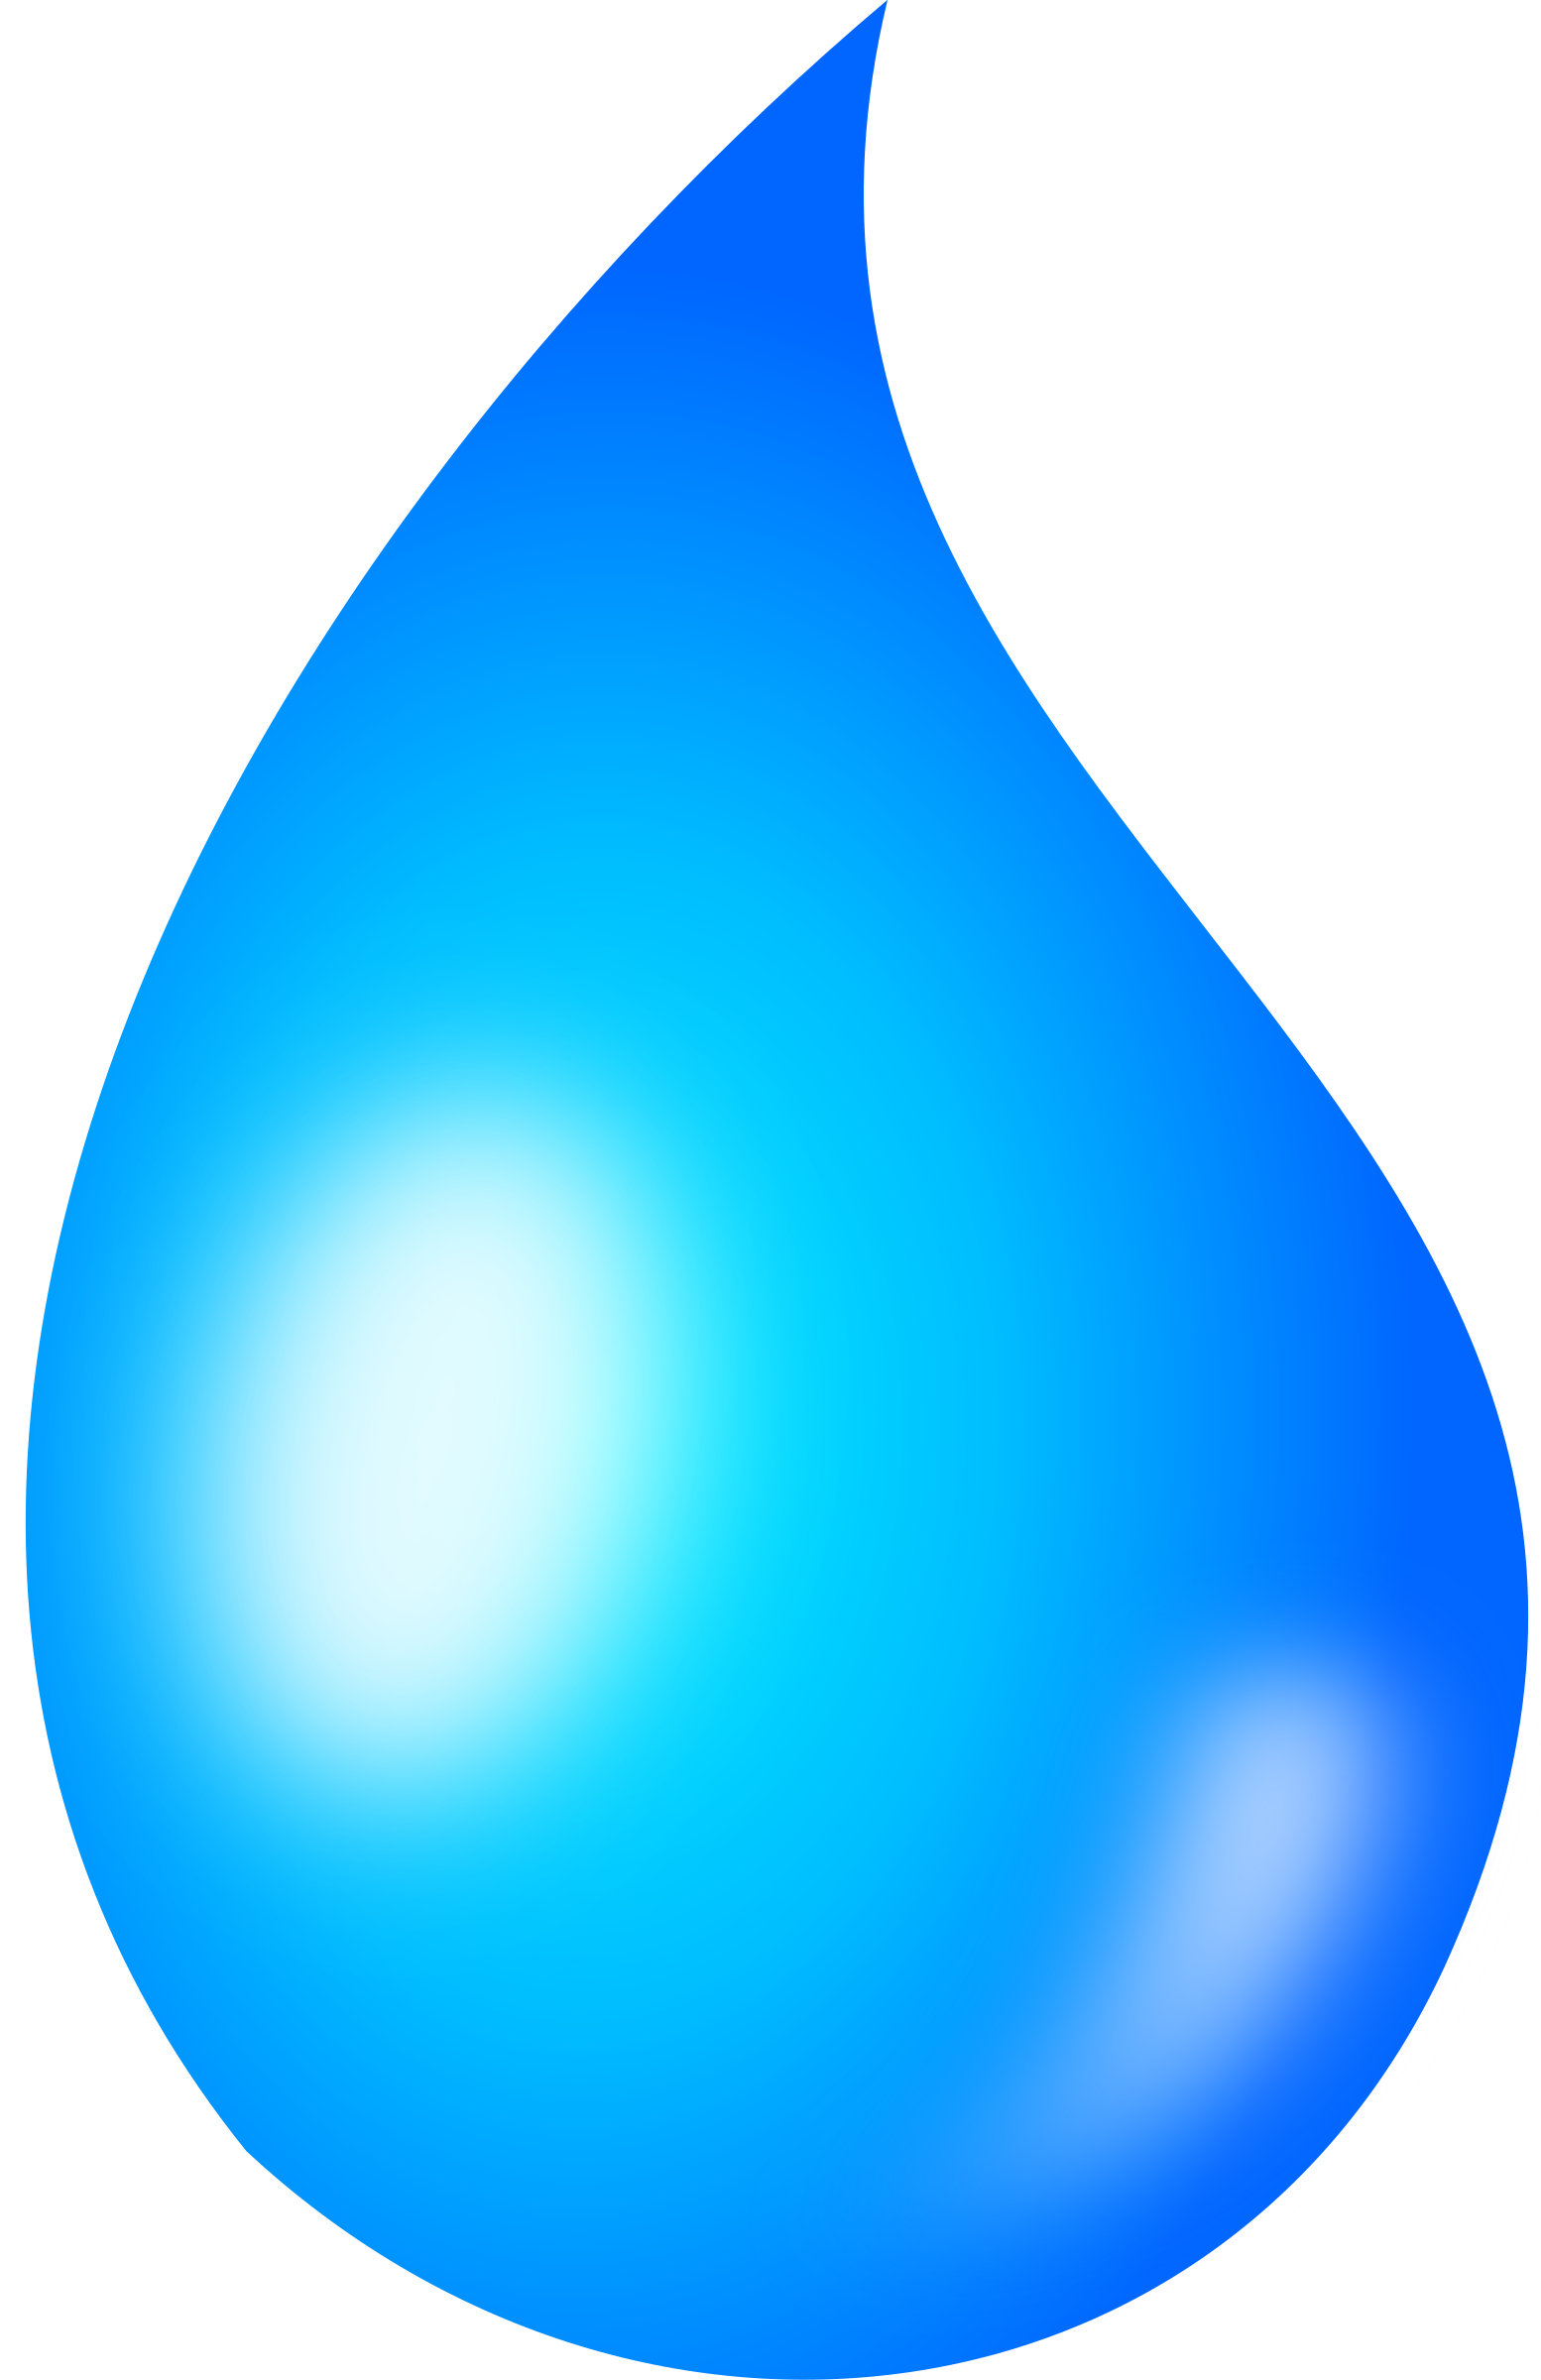 Liquid clipart teardrop Shaded Clipart drop Water drop